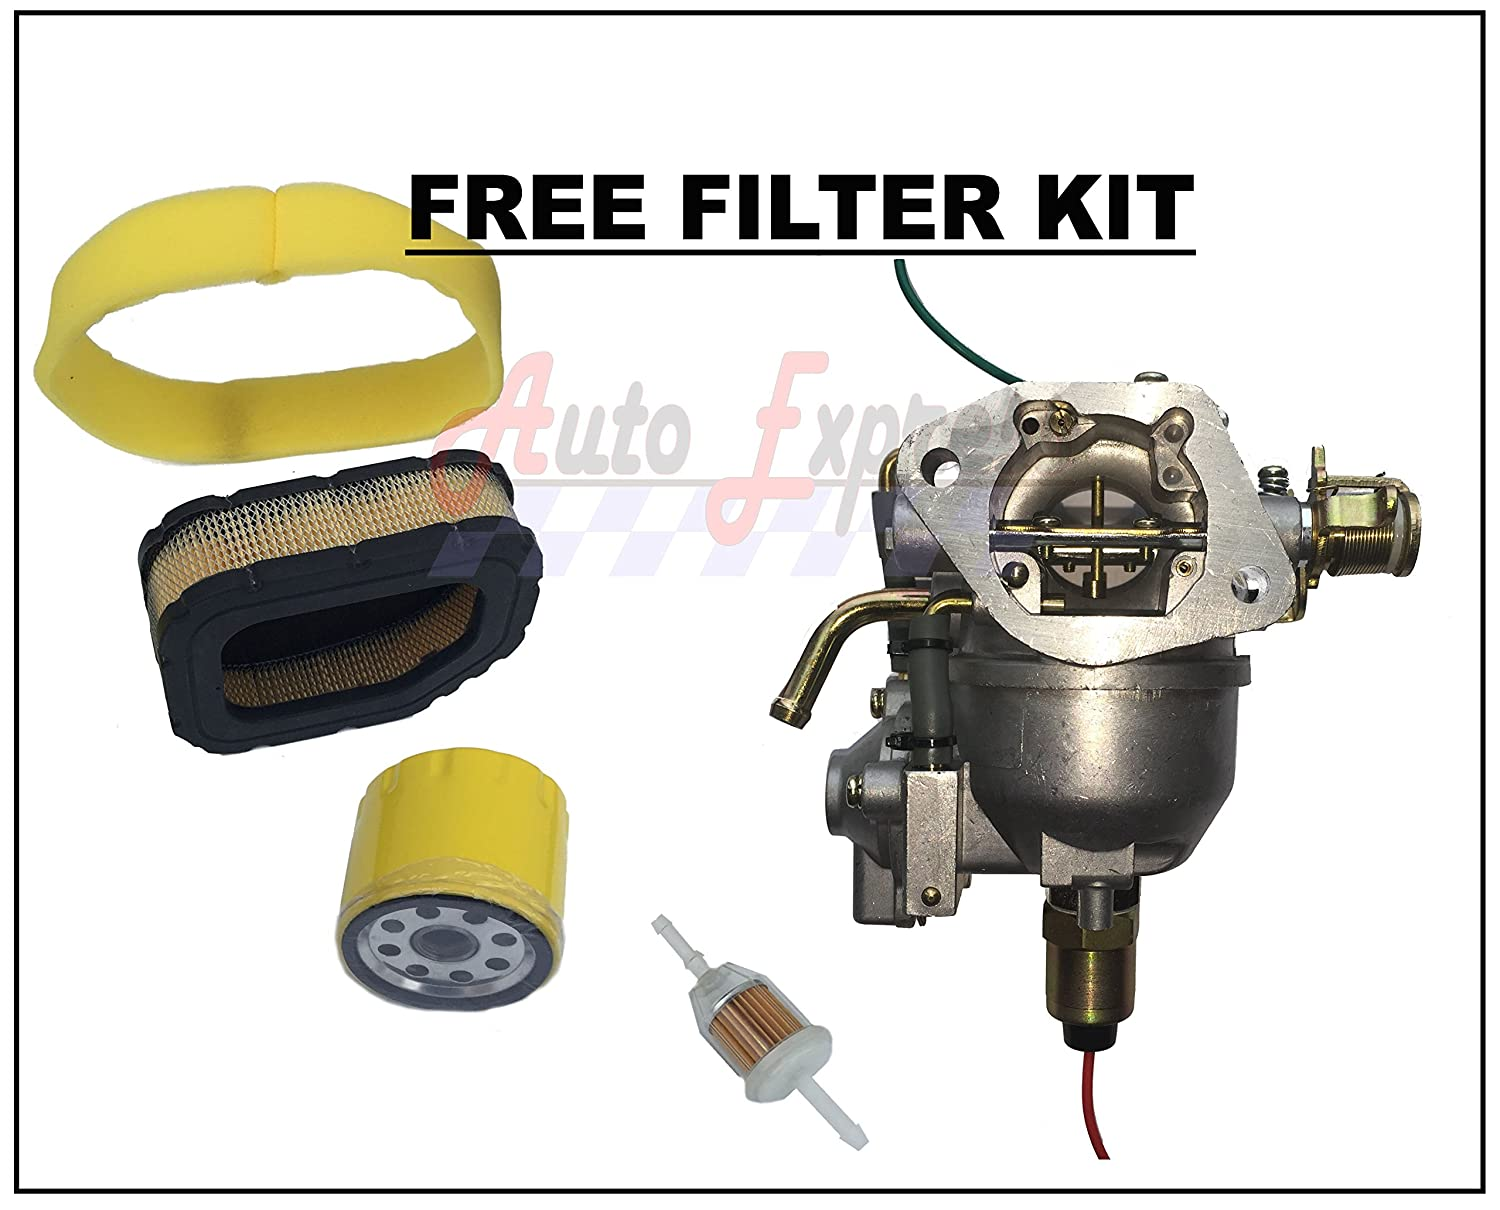 81WCl4RjBsL._SL1500_ amazon com carburetor fits john deere m655 m665 ztrak carb pump john deere m655 parts diagram at crackthecode.co